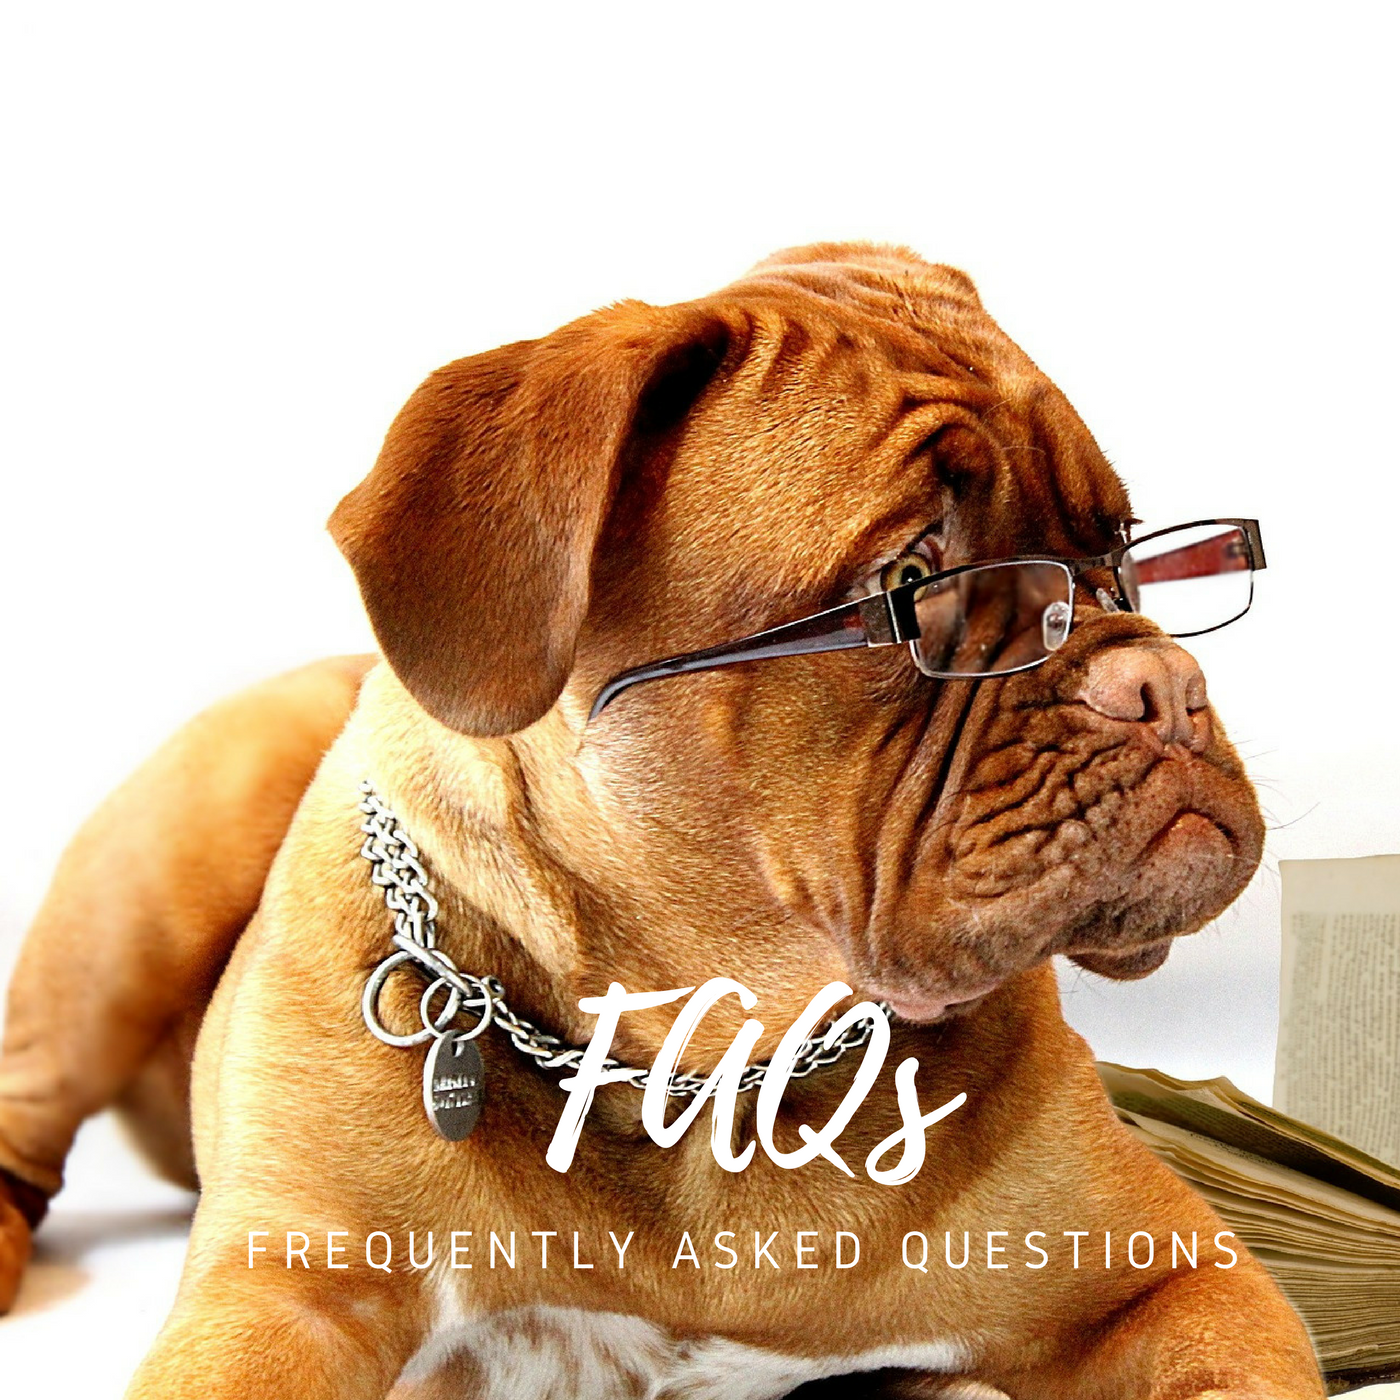 Have a question? Check out our FAQ pages!